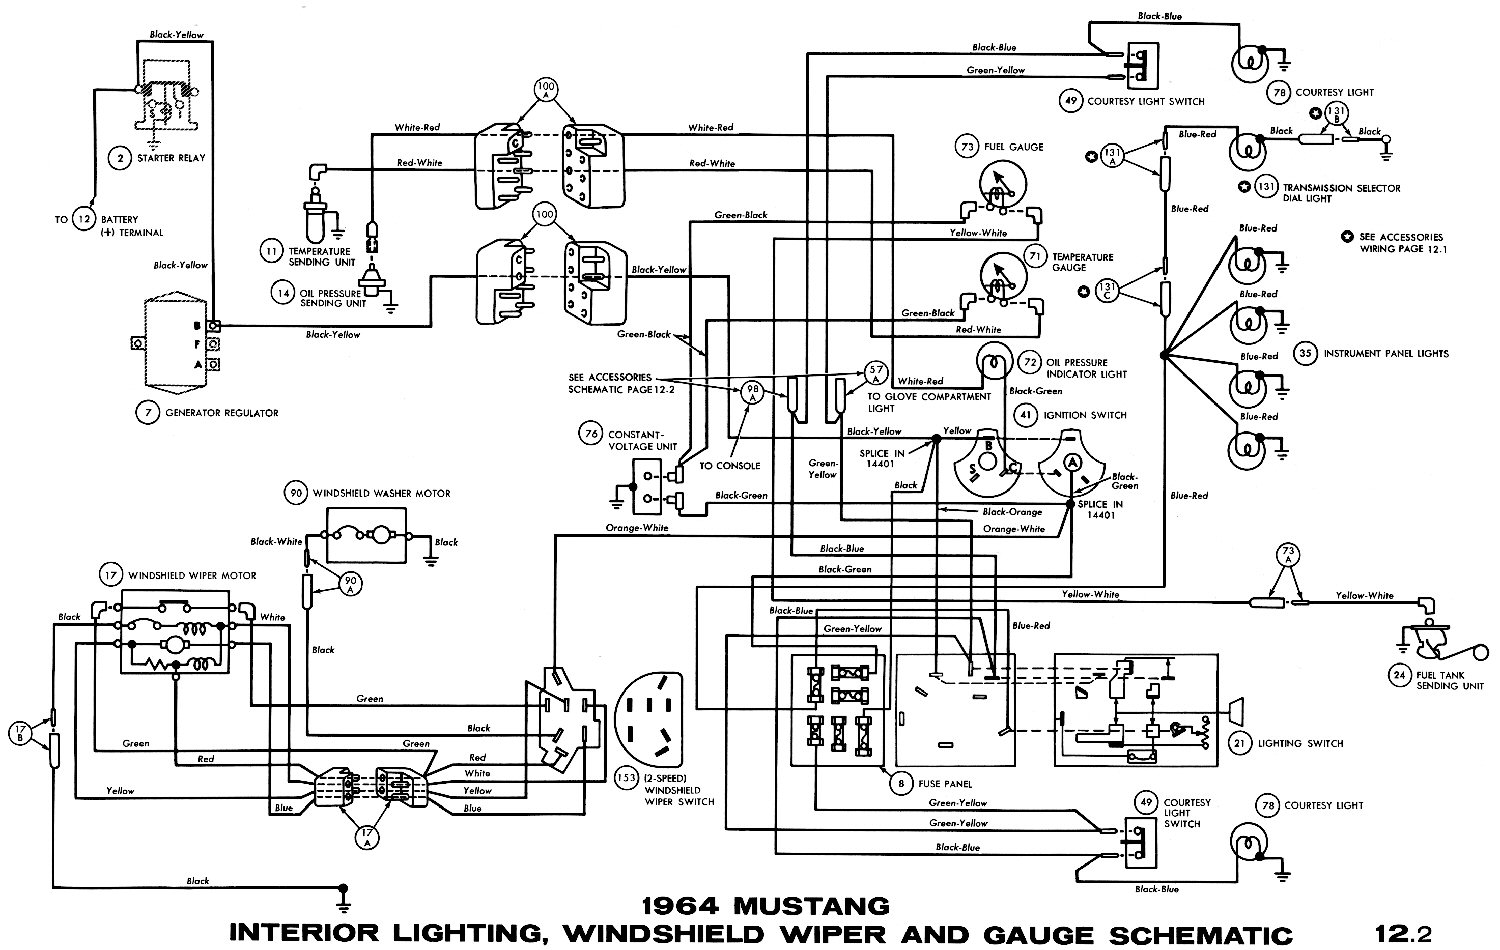 wiring diagram for water heater switch with 1964 Mustang Wiring Diagrams on Reddy Heater Wiring Diagram in addition I51 3839 besides 902628 1954 F100 Heater Box moreover Aquastat Wiring Diagram Zone likewise 84485 Wiring Residential Gas Heating Units.